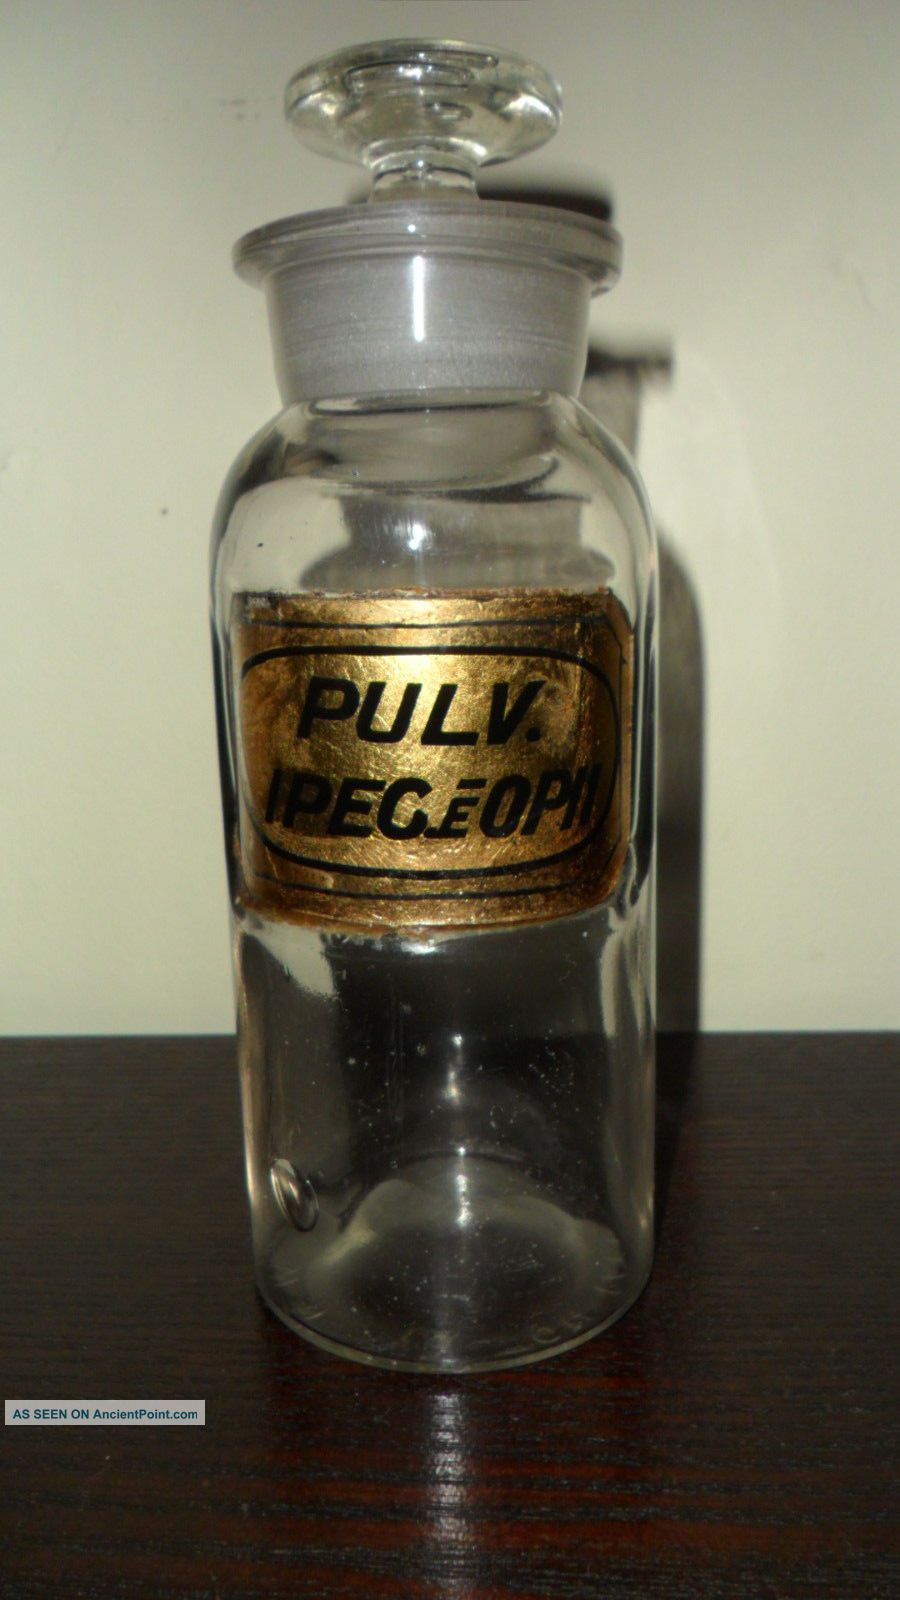 Civil War Era 1862 Opium Opii Apothecary Pharmacy Label Under Glass Bottle Bottles & Jars photo